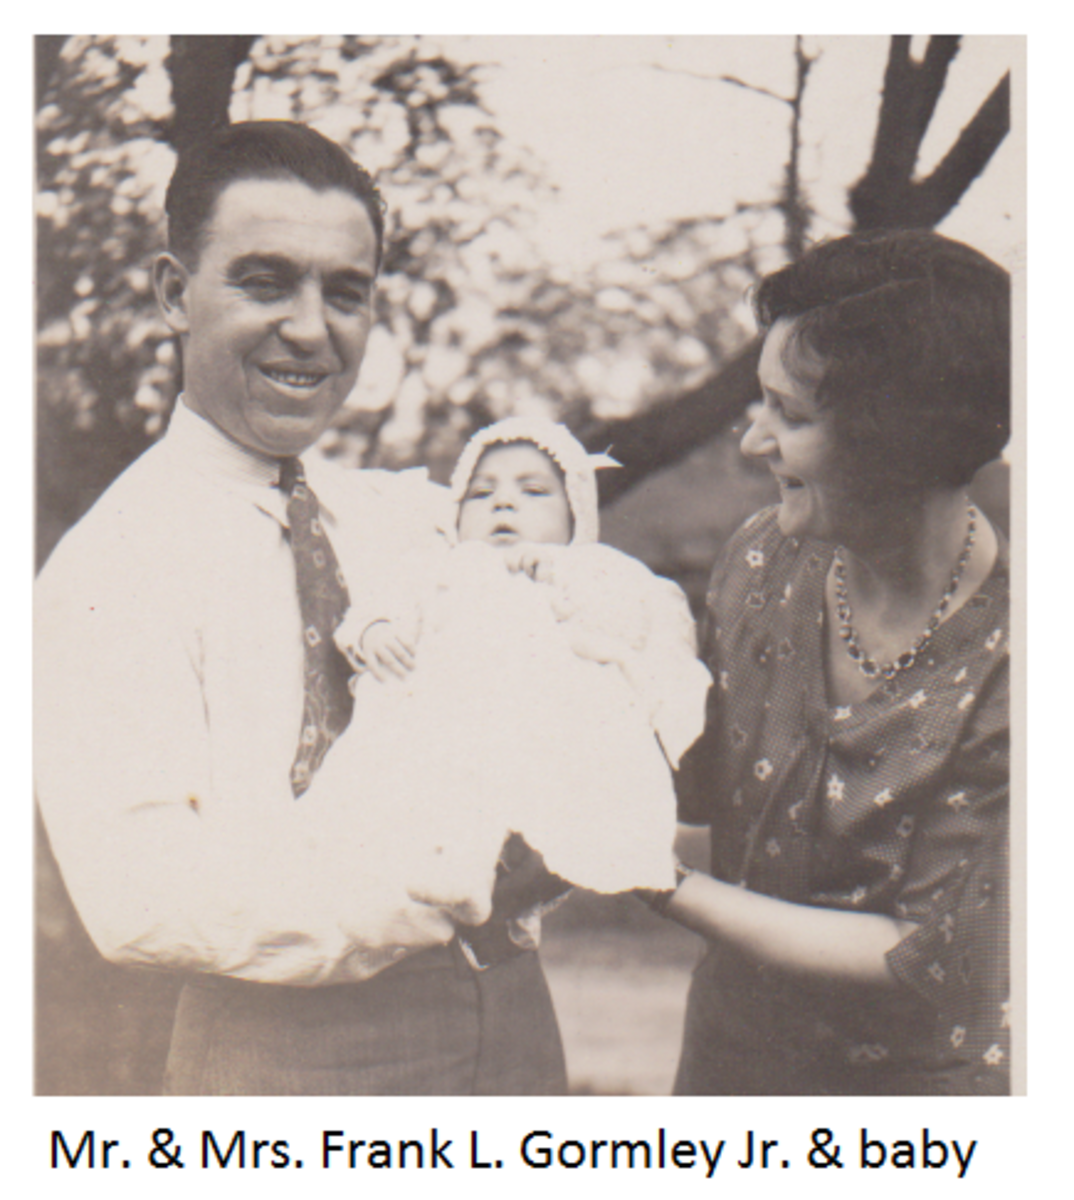 Frank L. Gormley with wife and daughter